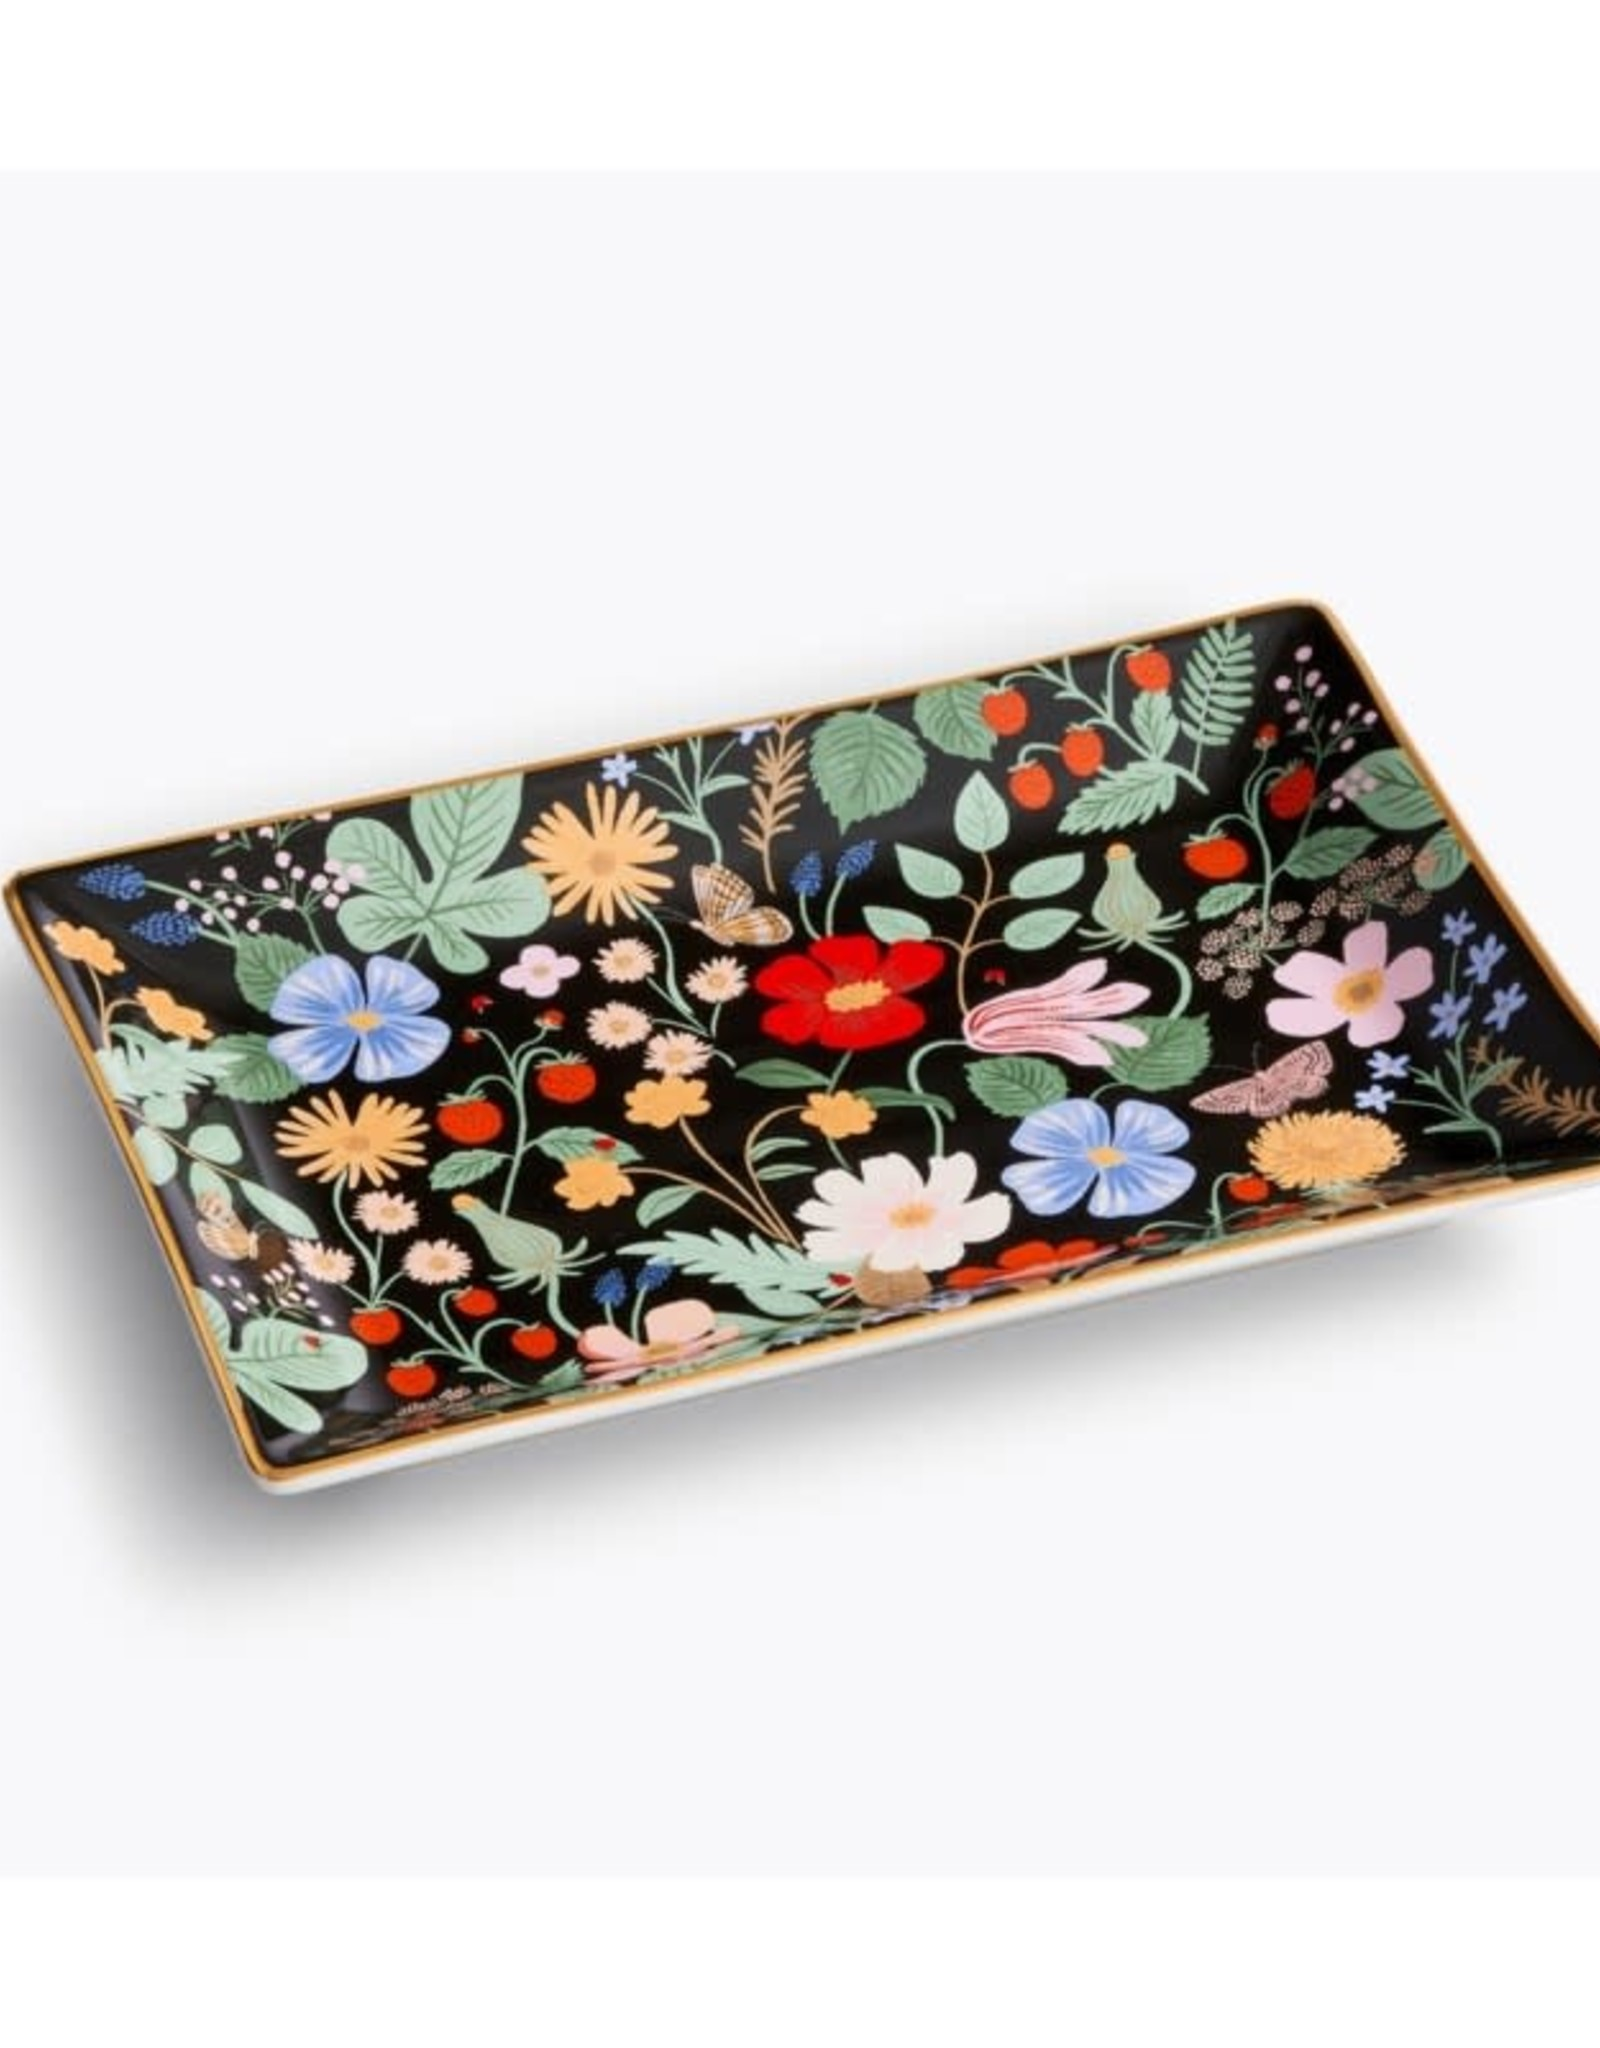 Rifle Paper Co. Catchall Tray - Strawberry Fields